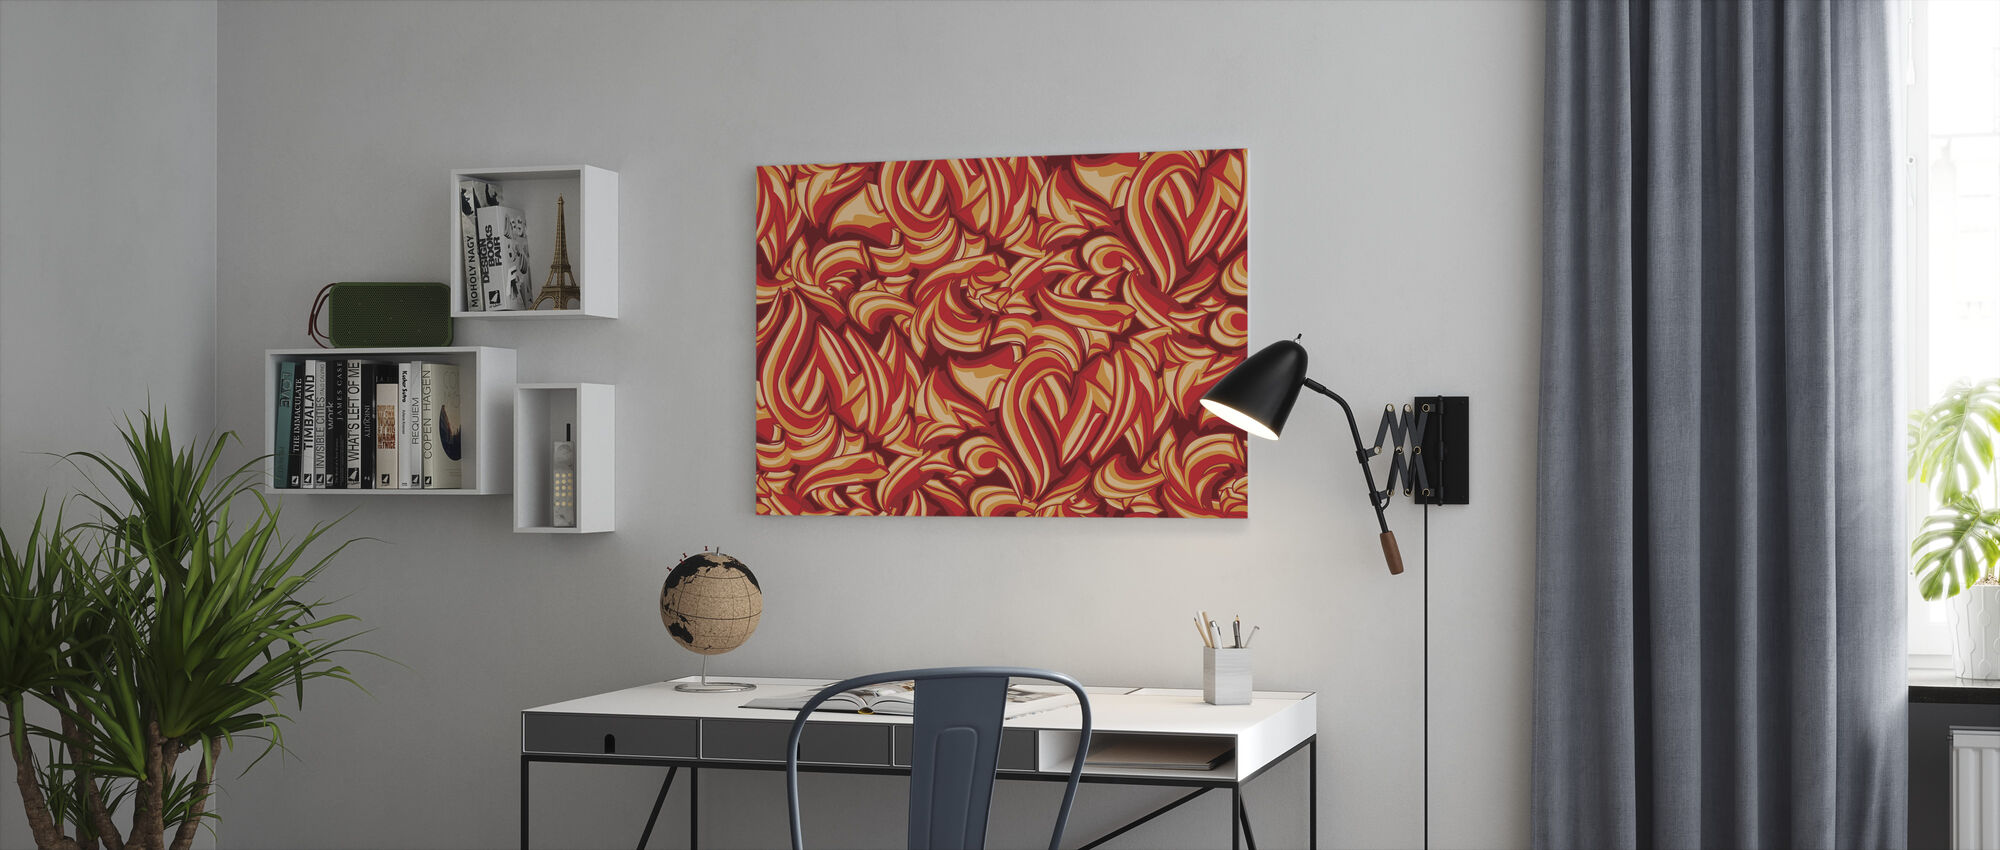 Sketchy Splat Graffiti - Canvas print - Office